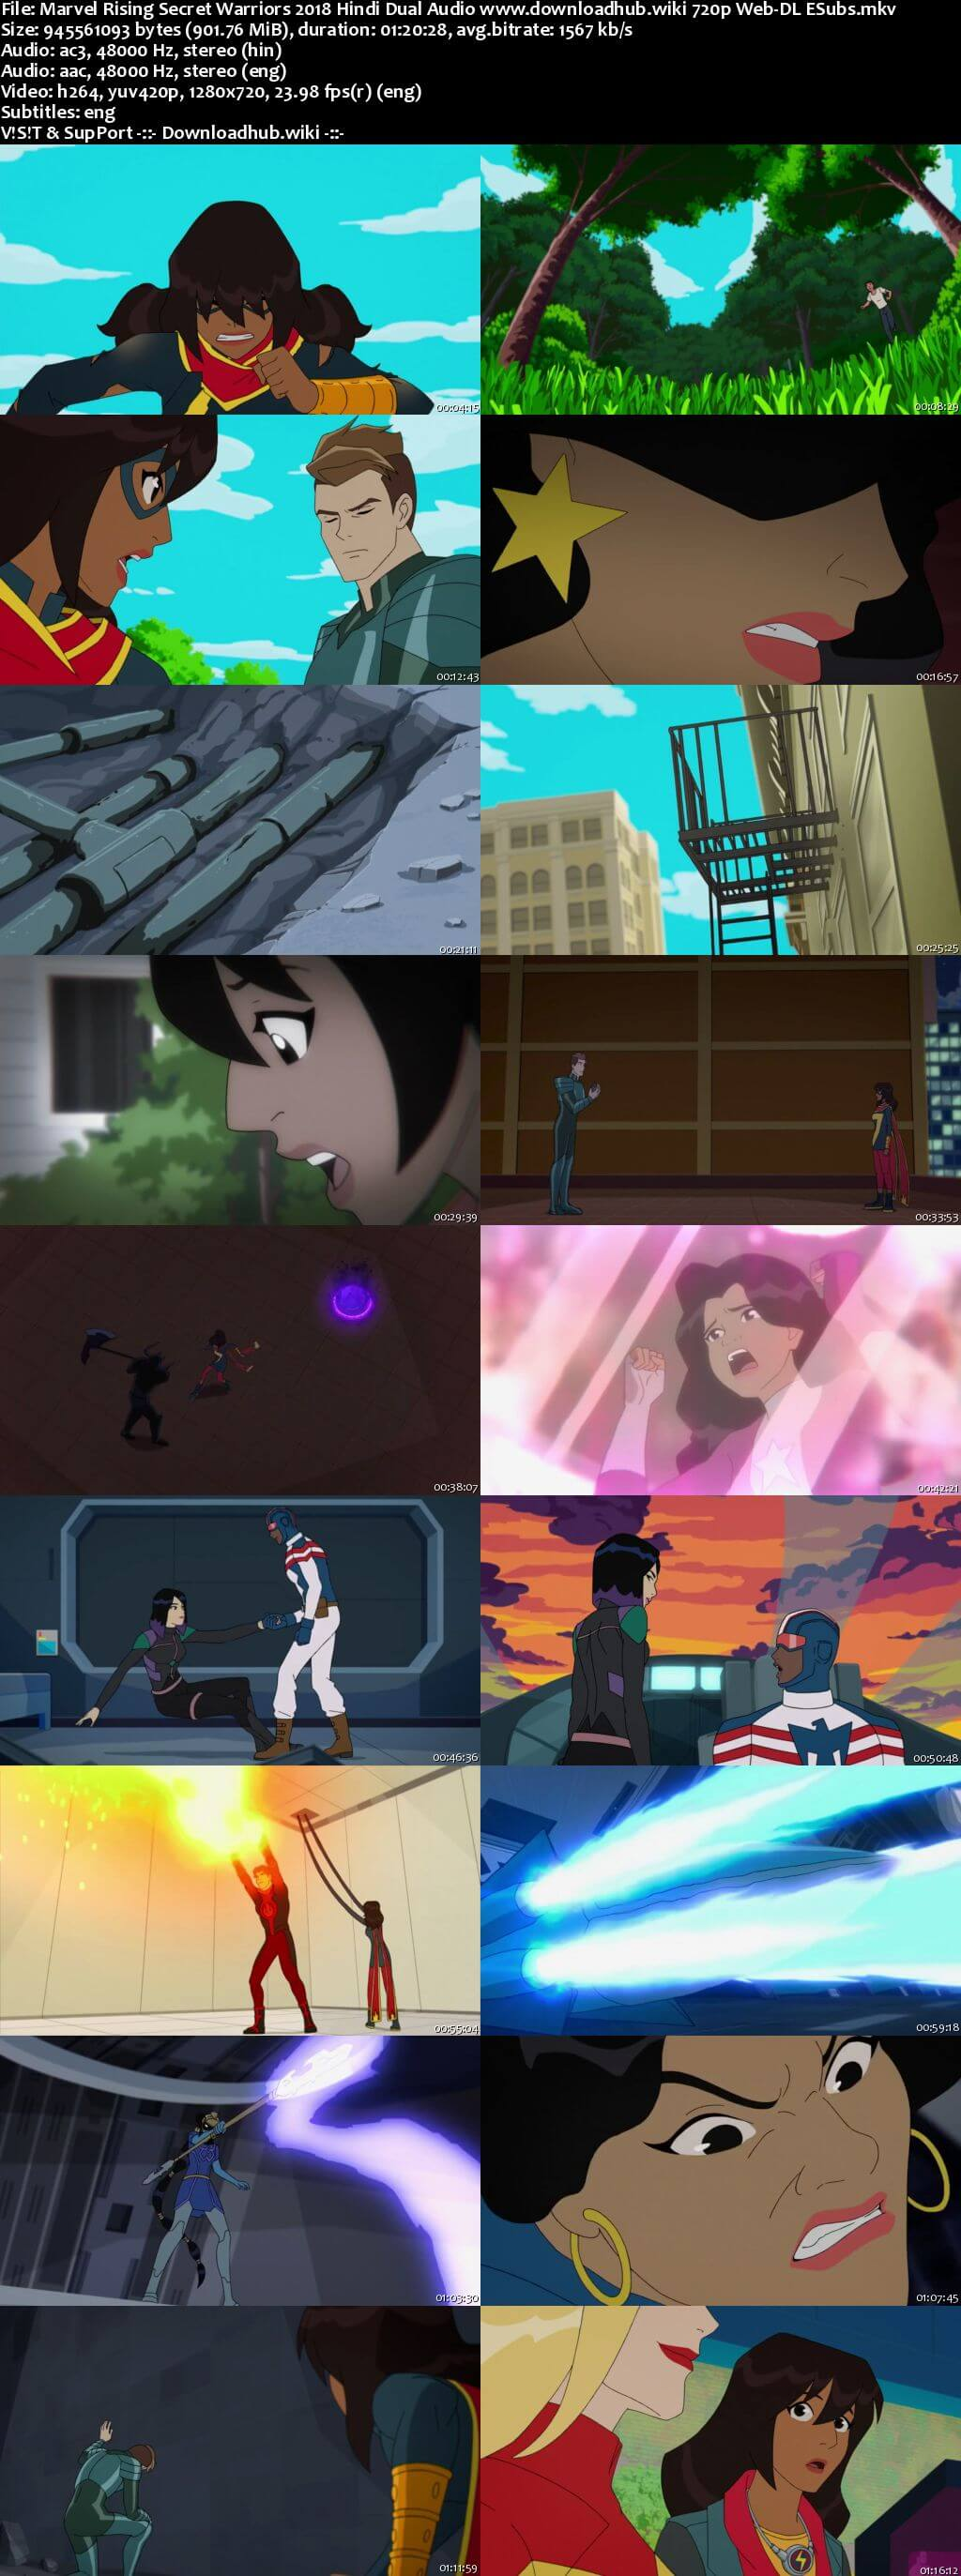 Marvel Rising Secret Warriors 2018 Hindi Dual Audio 720p Web-DL ESubs